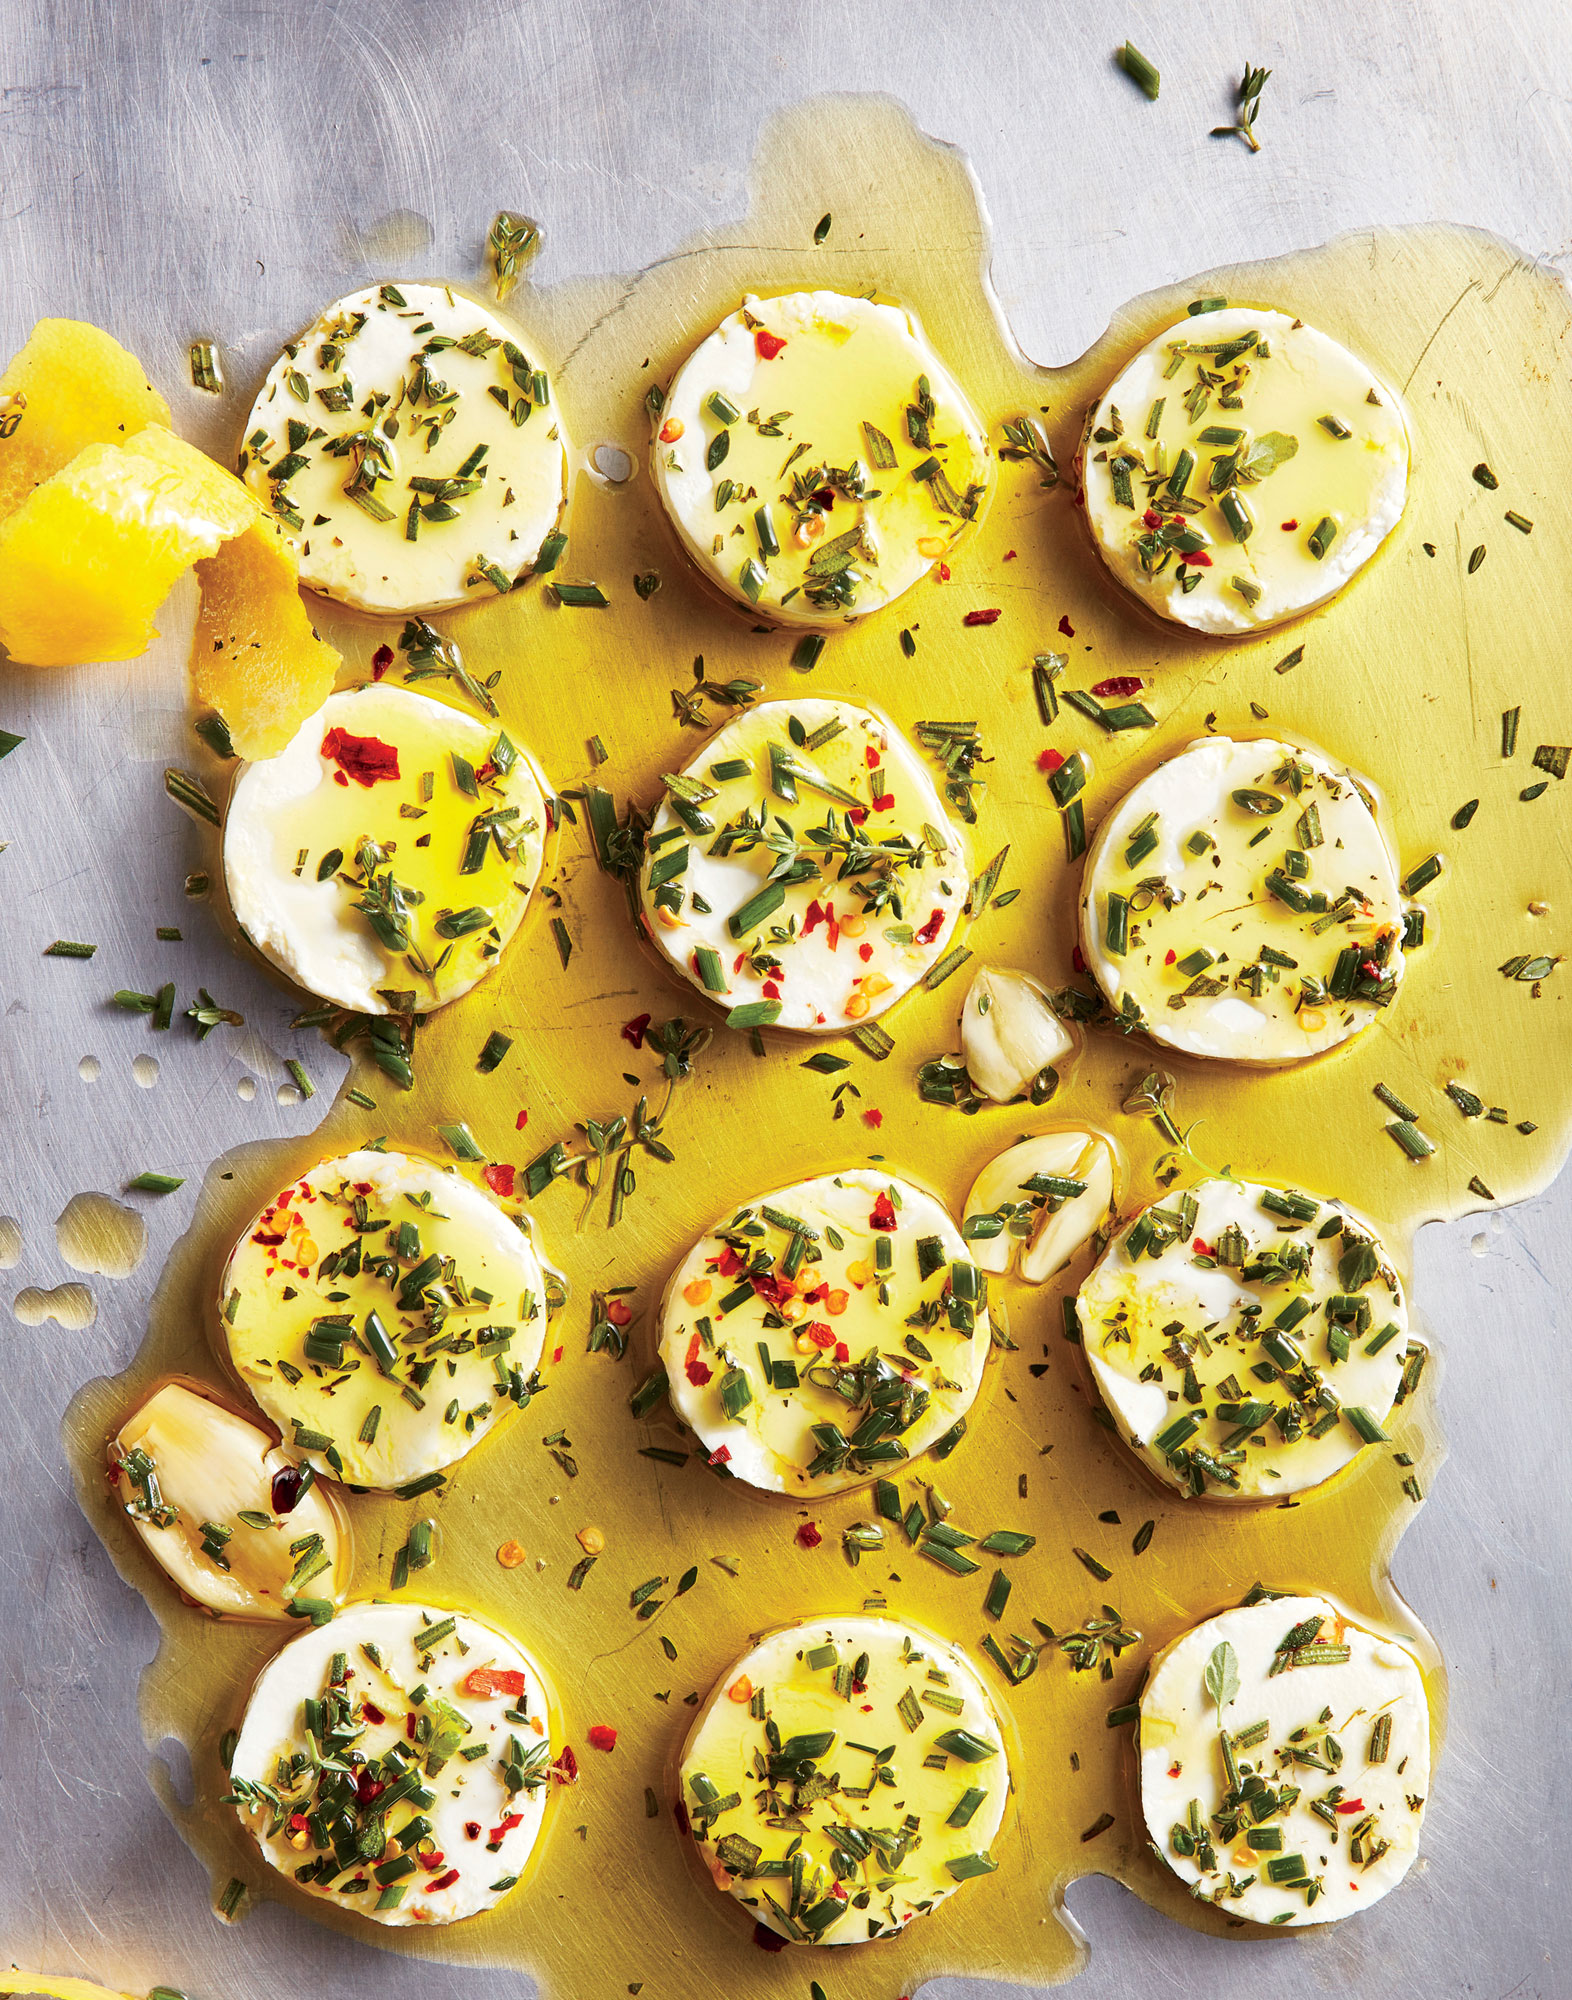 Marinated Goat Cheese Recipe - Cooking Light